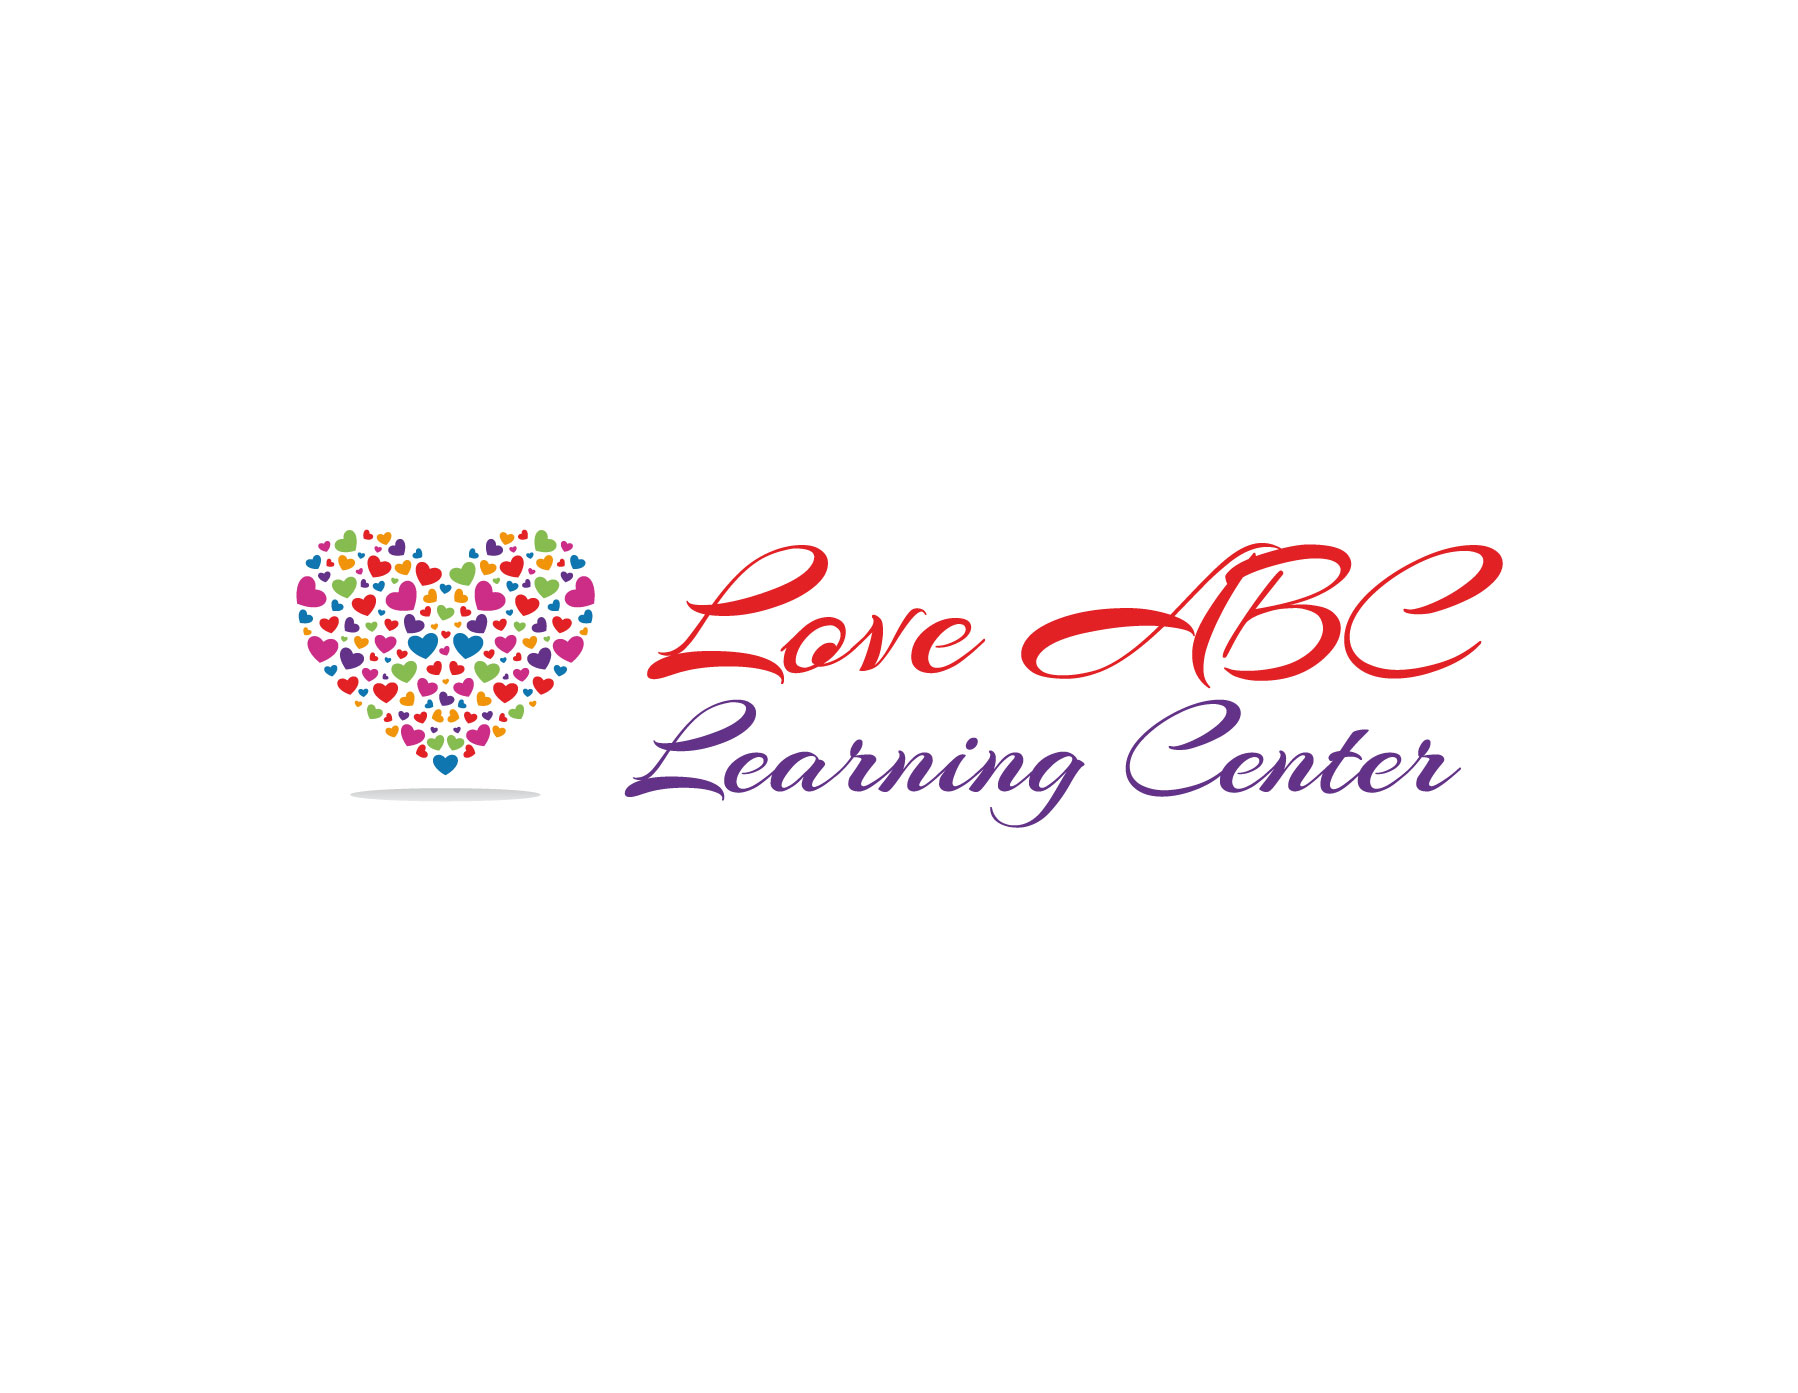 LOVE ABC LEARNING CENTER